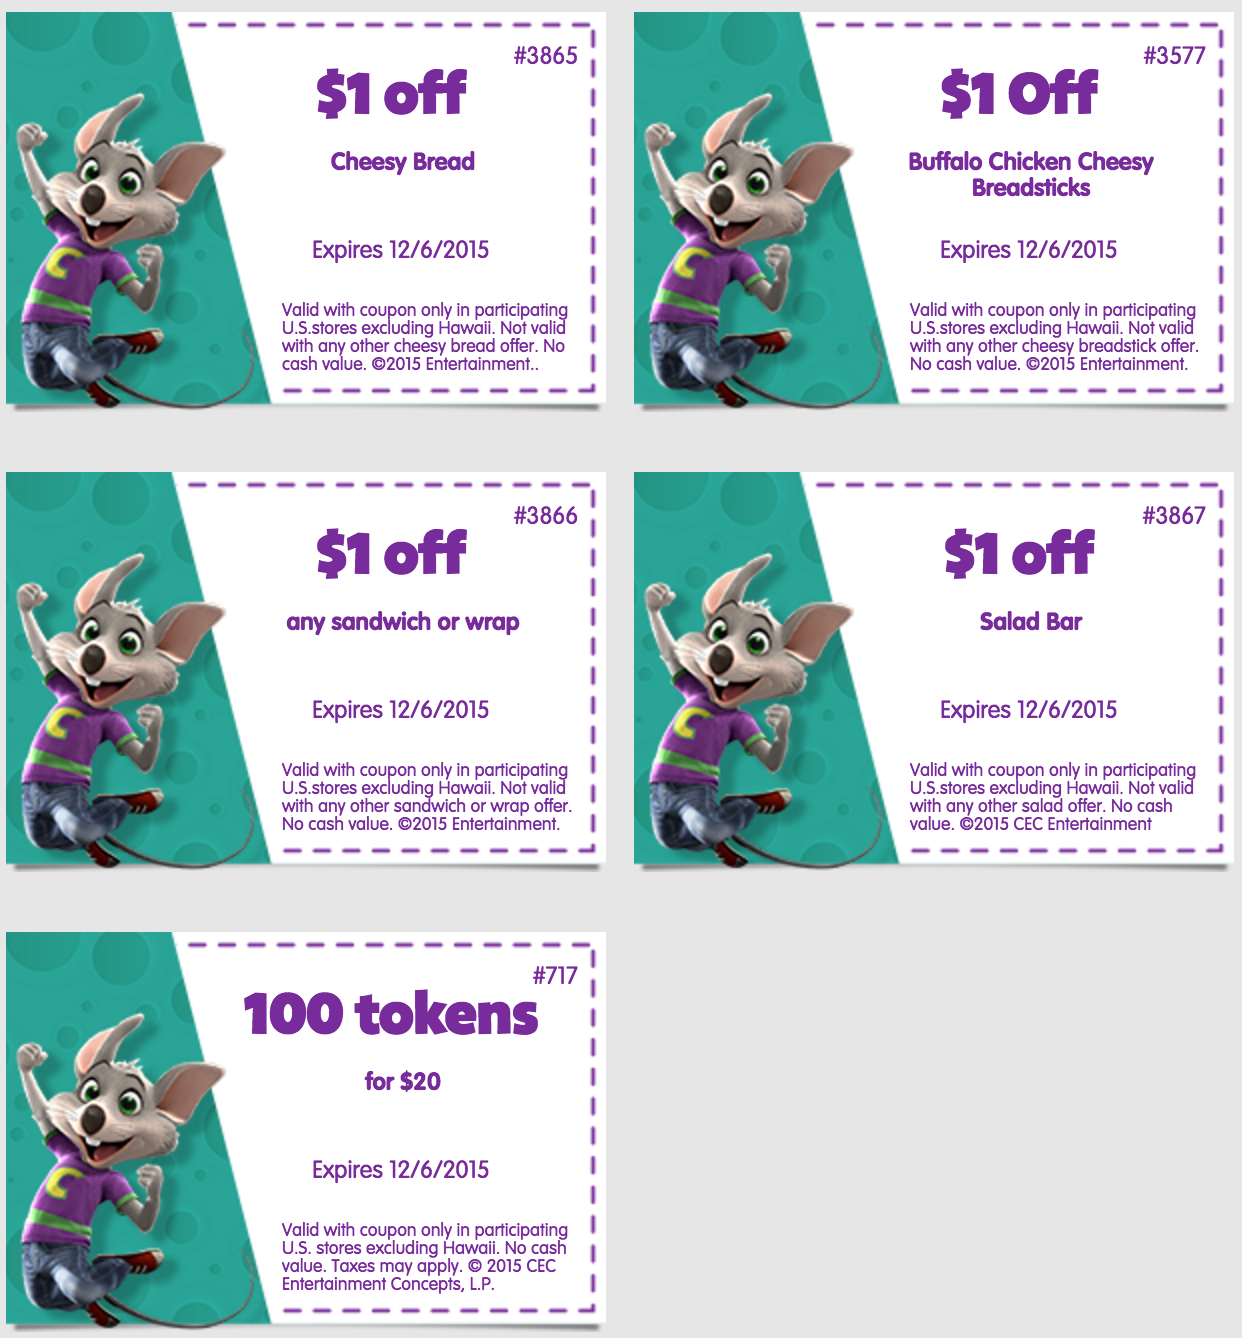 Kirklands coupons december 2013 - Chuck E Cheese Coupons October 2017 Printable Coupons Free Tokens